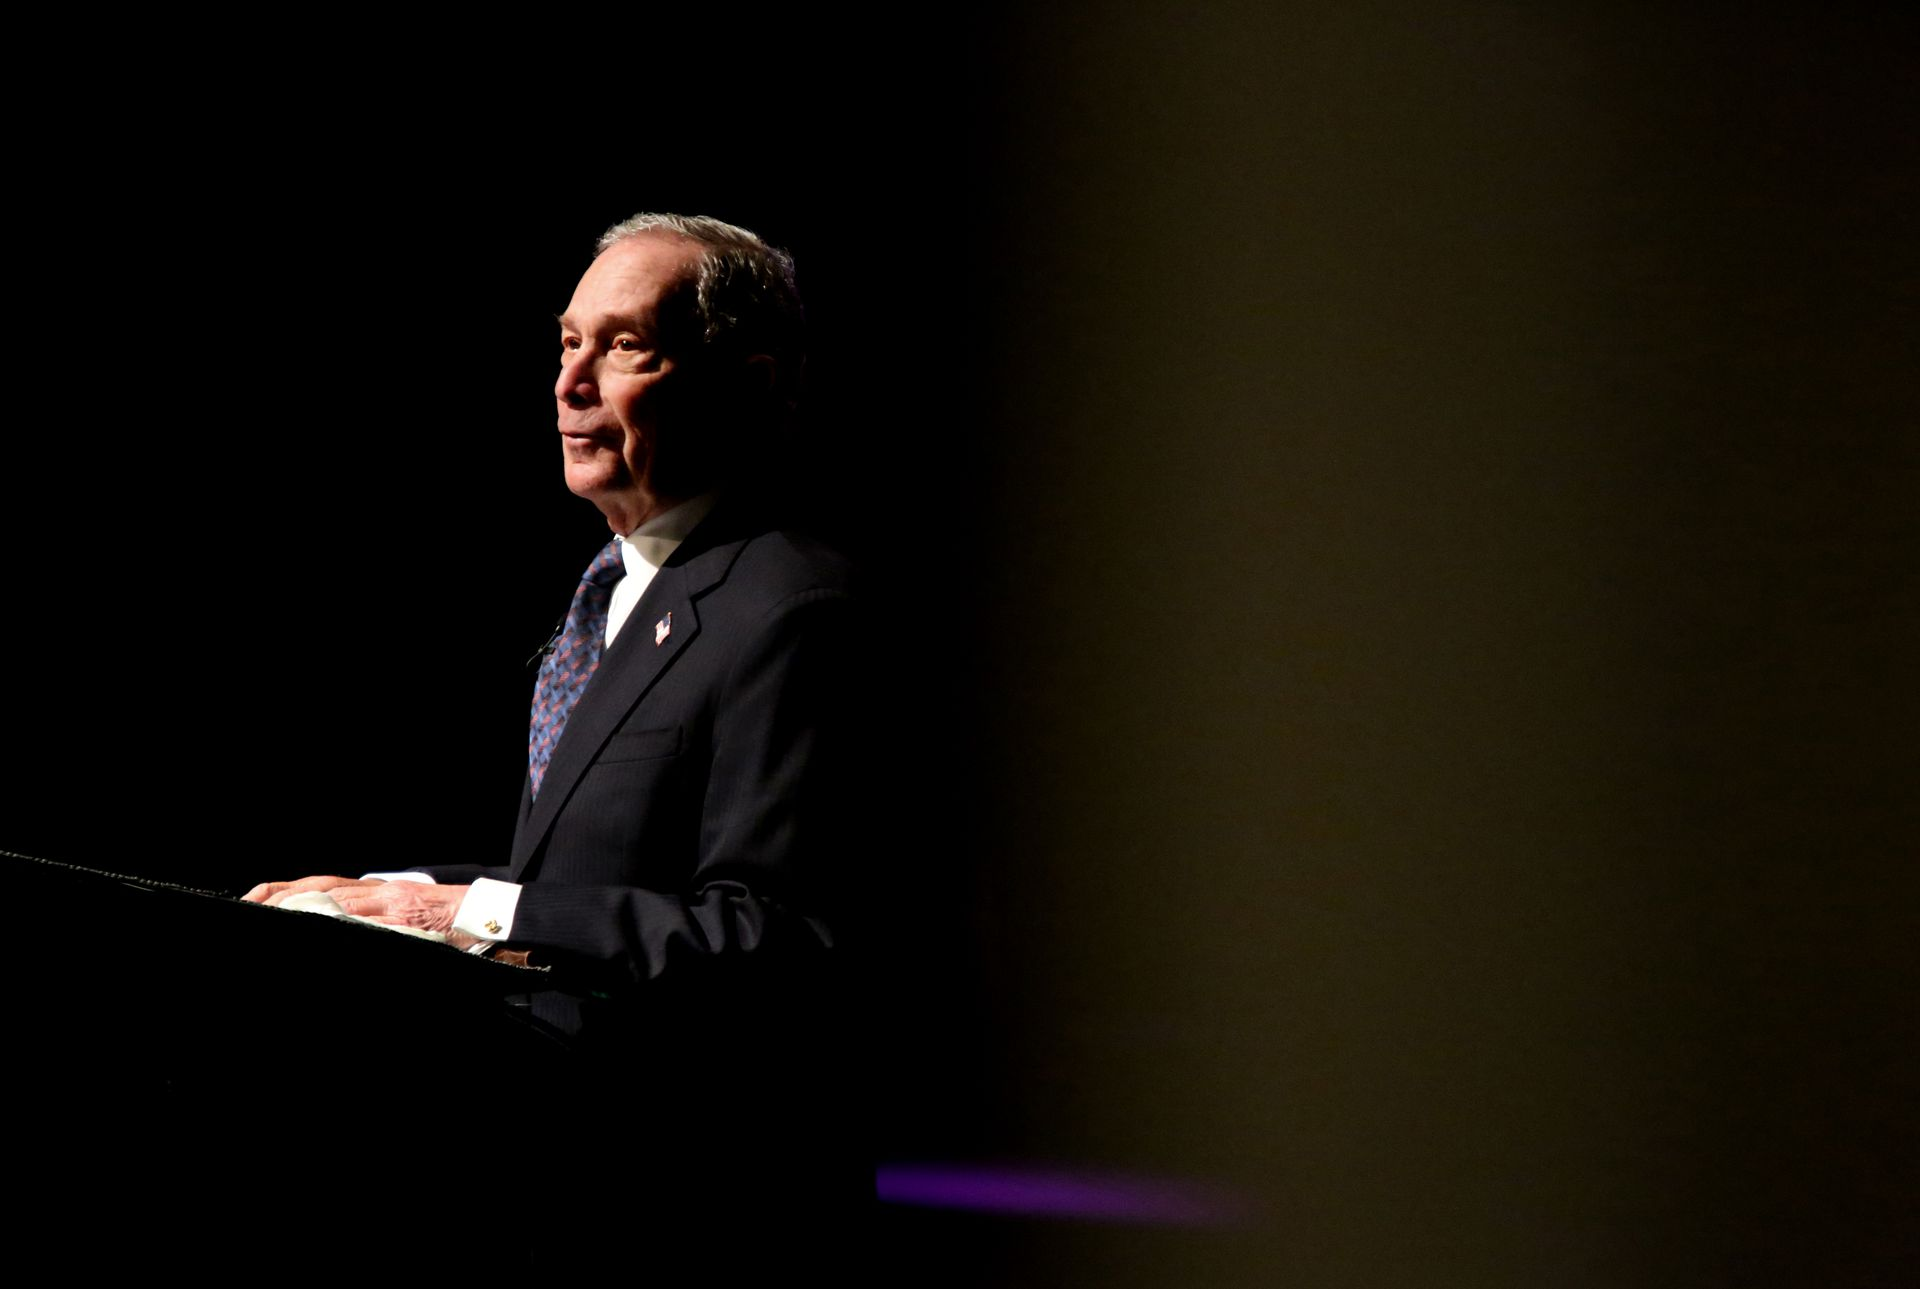 Michael Bloomberg on the issues, in under 500 words